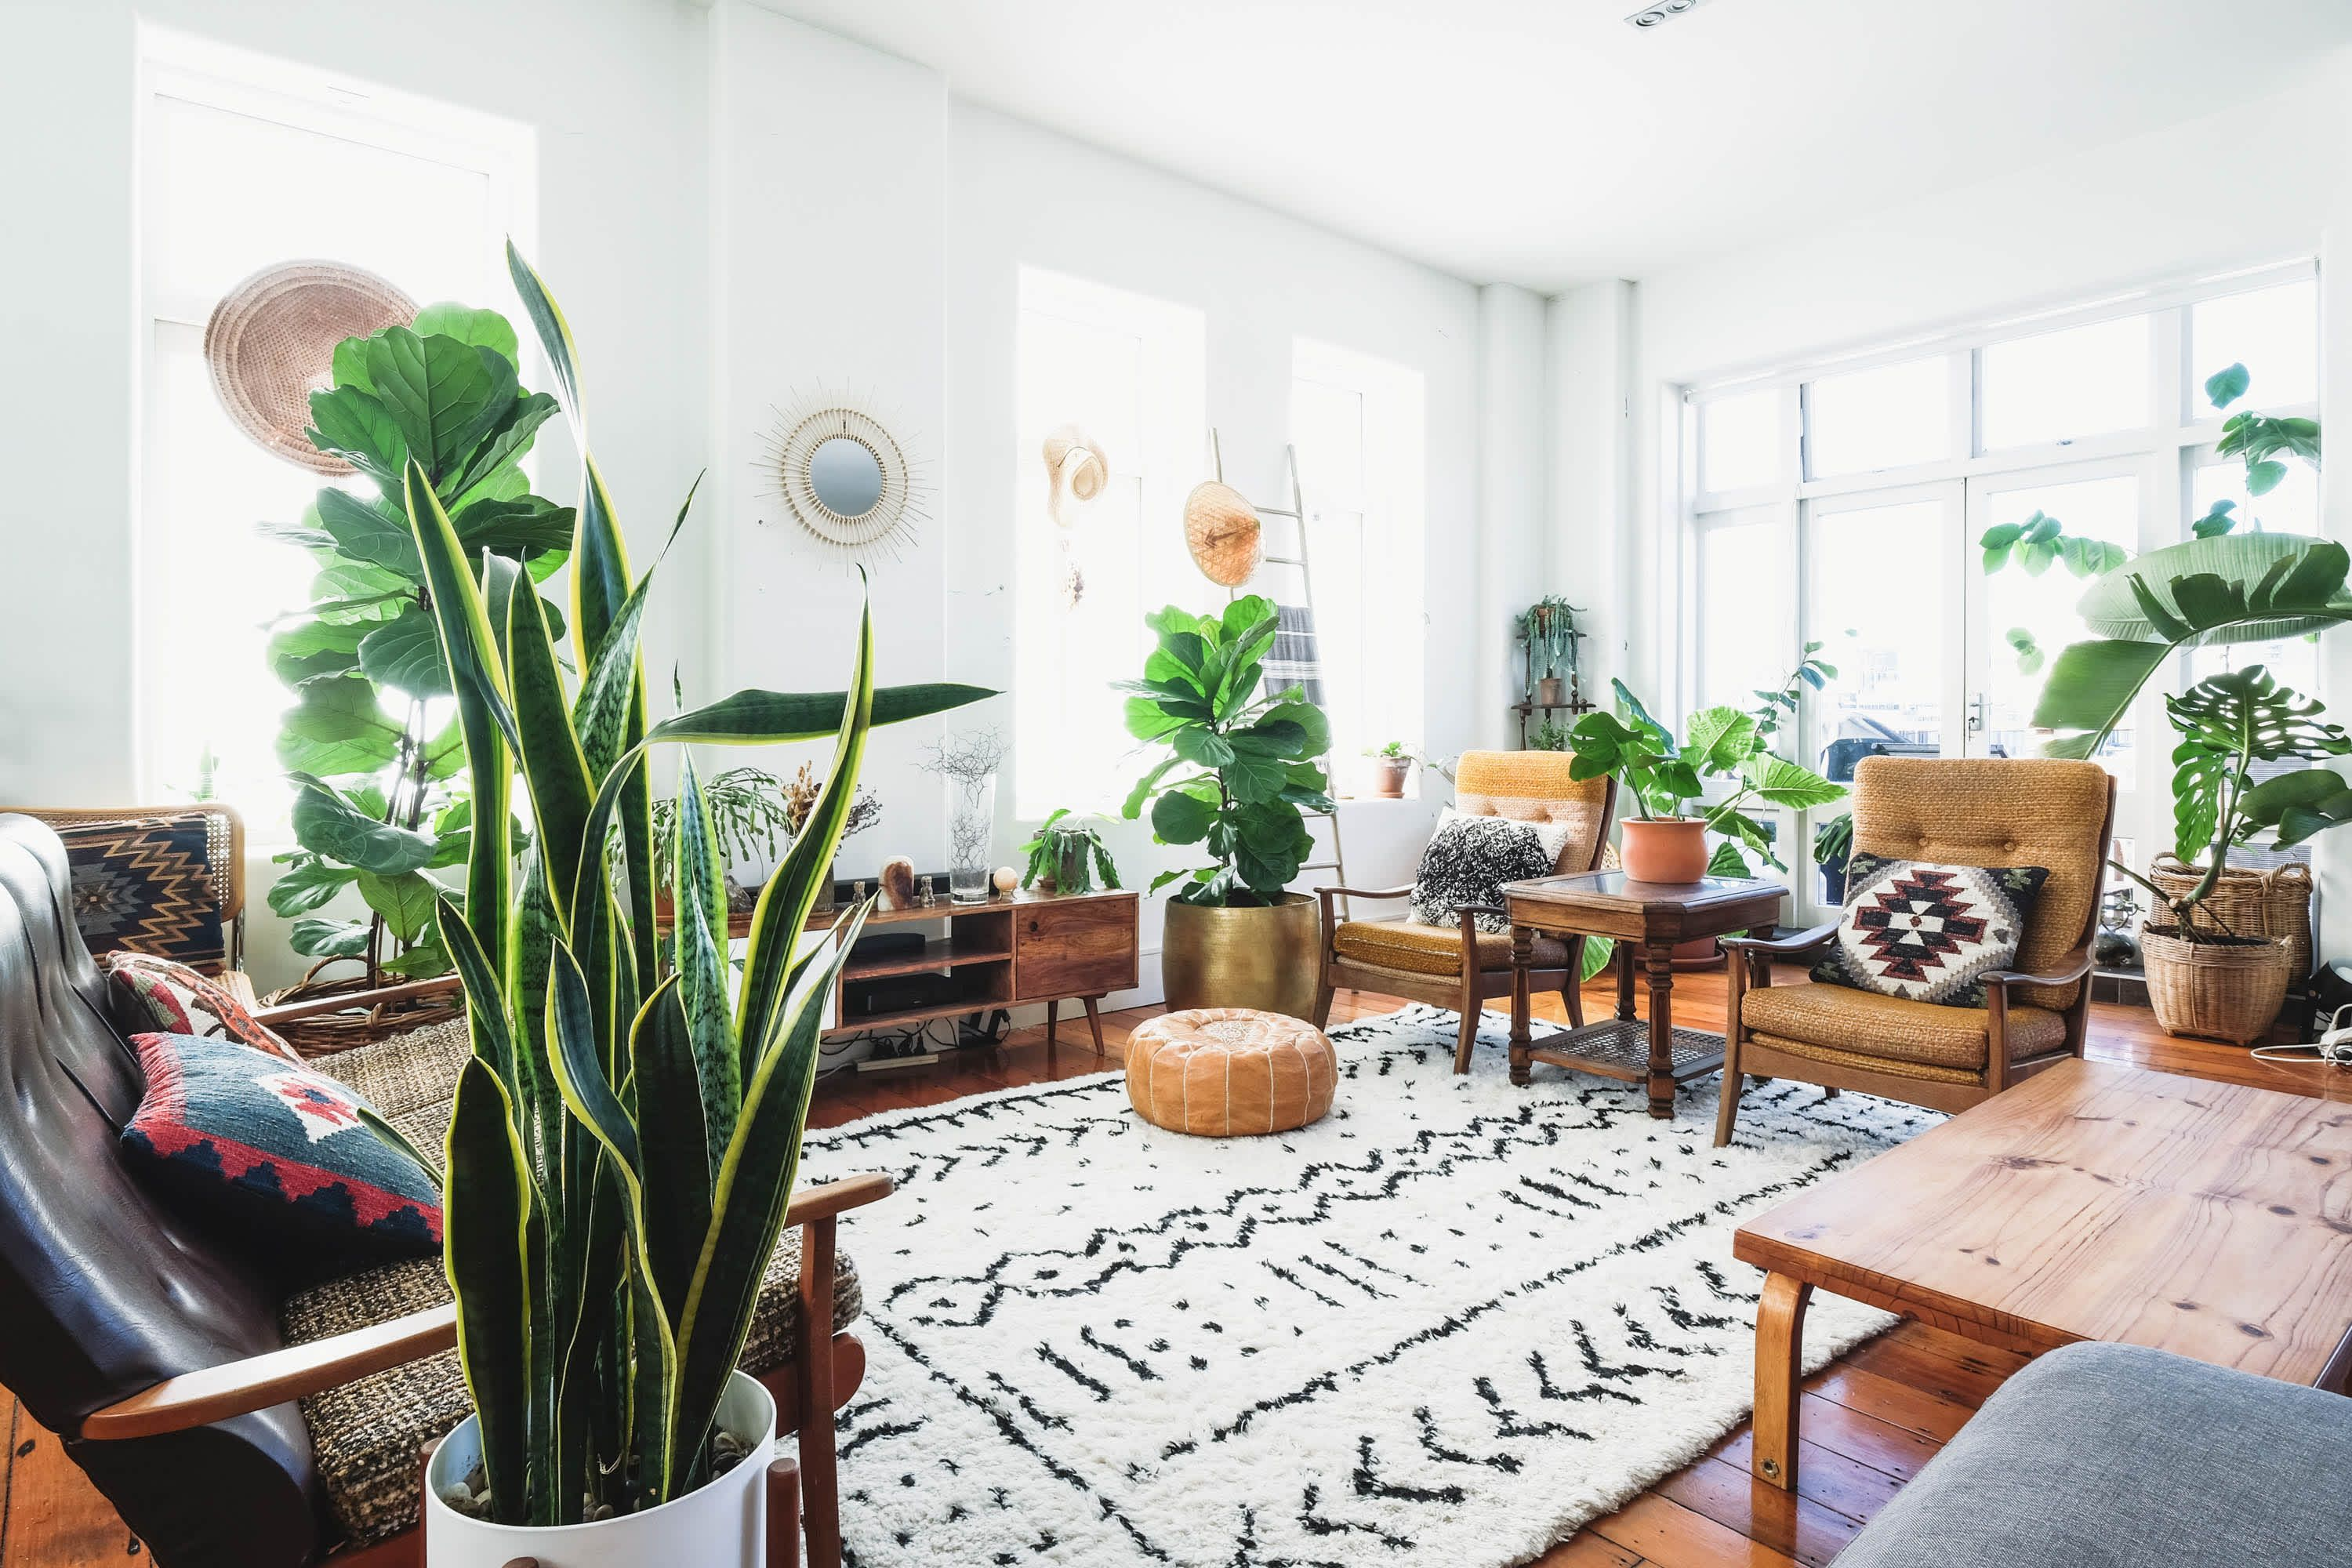 There Are More Plants Than Furniture In This Sunny New Zealand Loft In 2020 Home Decor Decor Interior